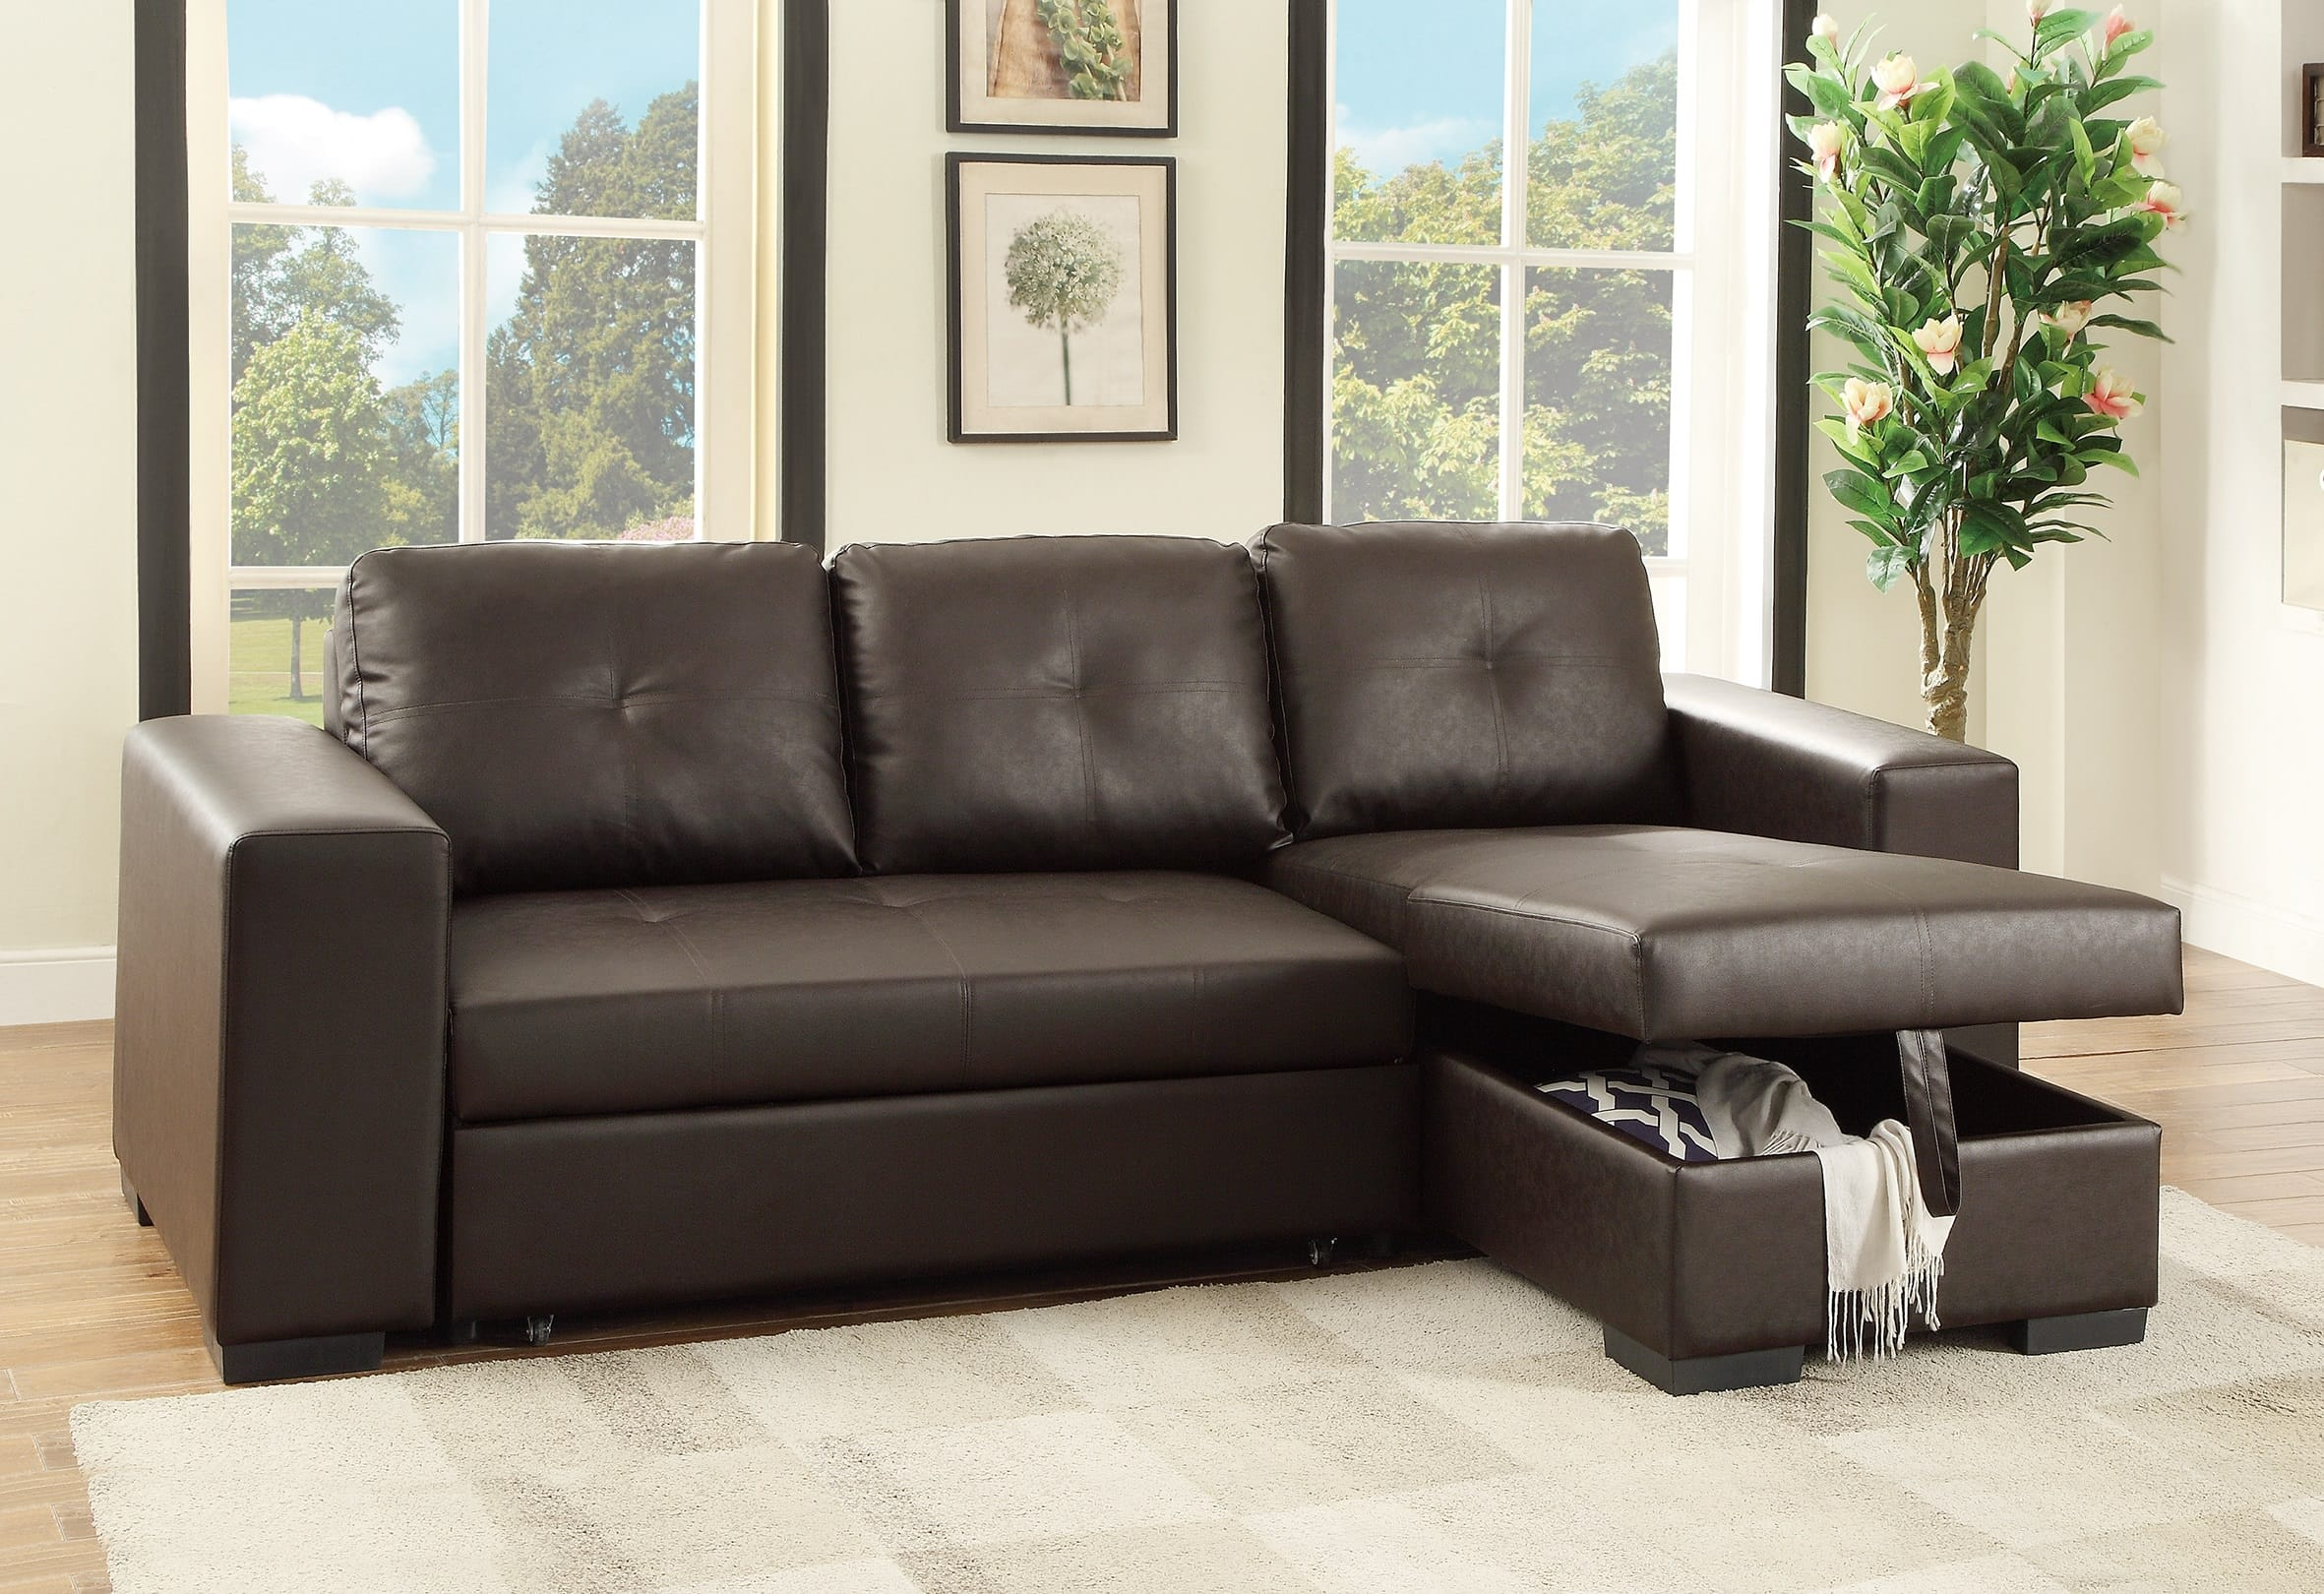 F6930 Espresso Convertible Sectional Sofa by Poundex